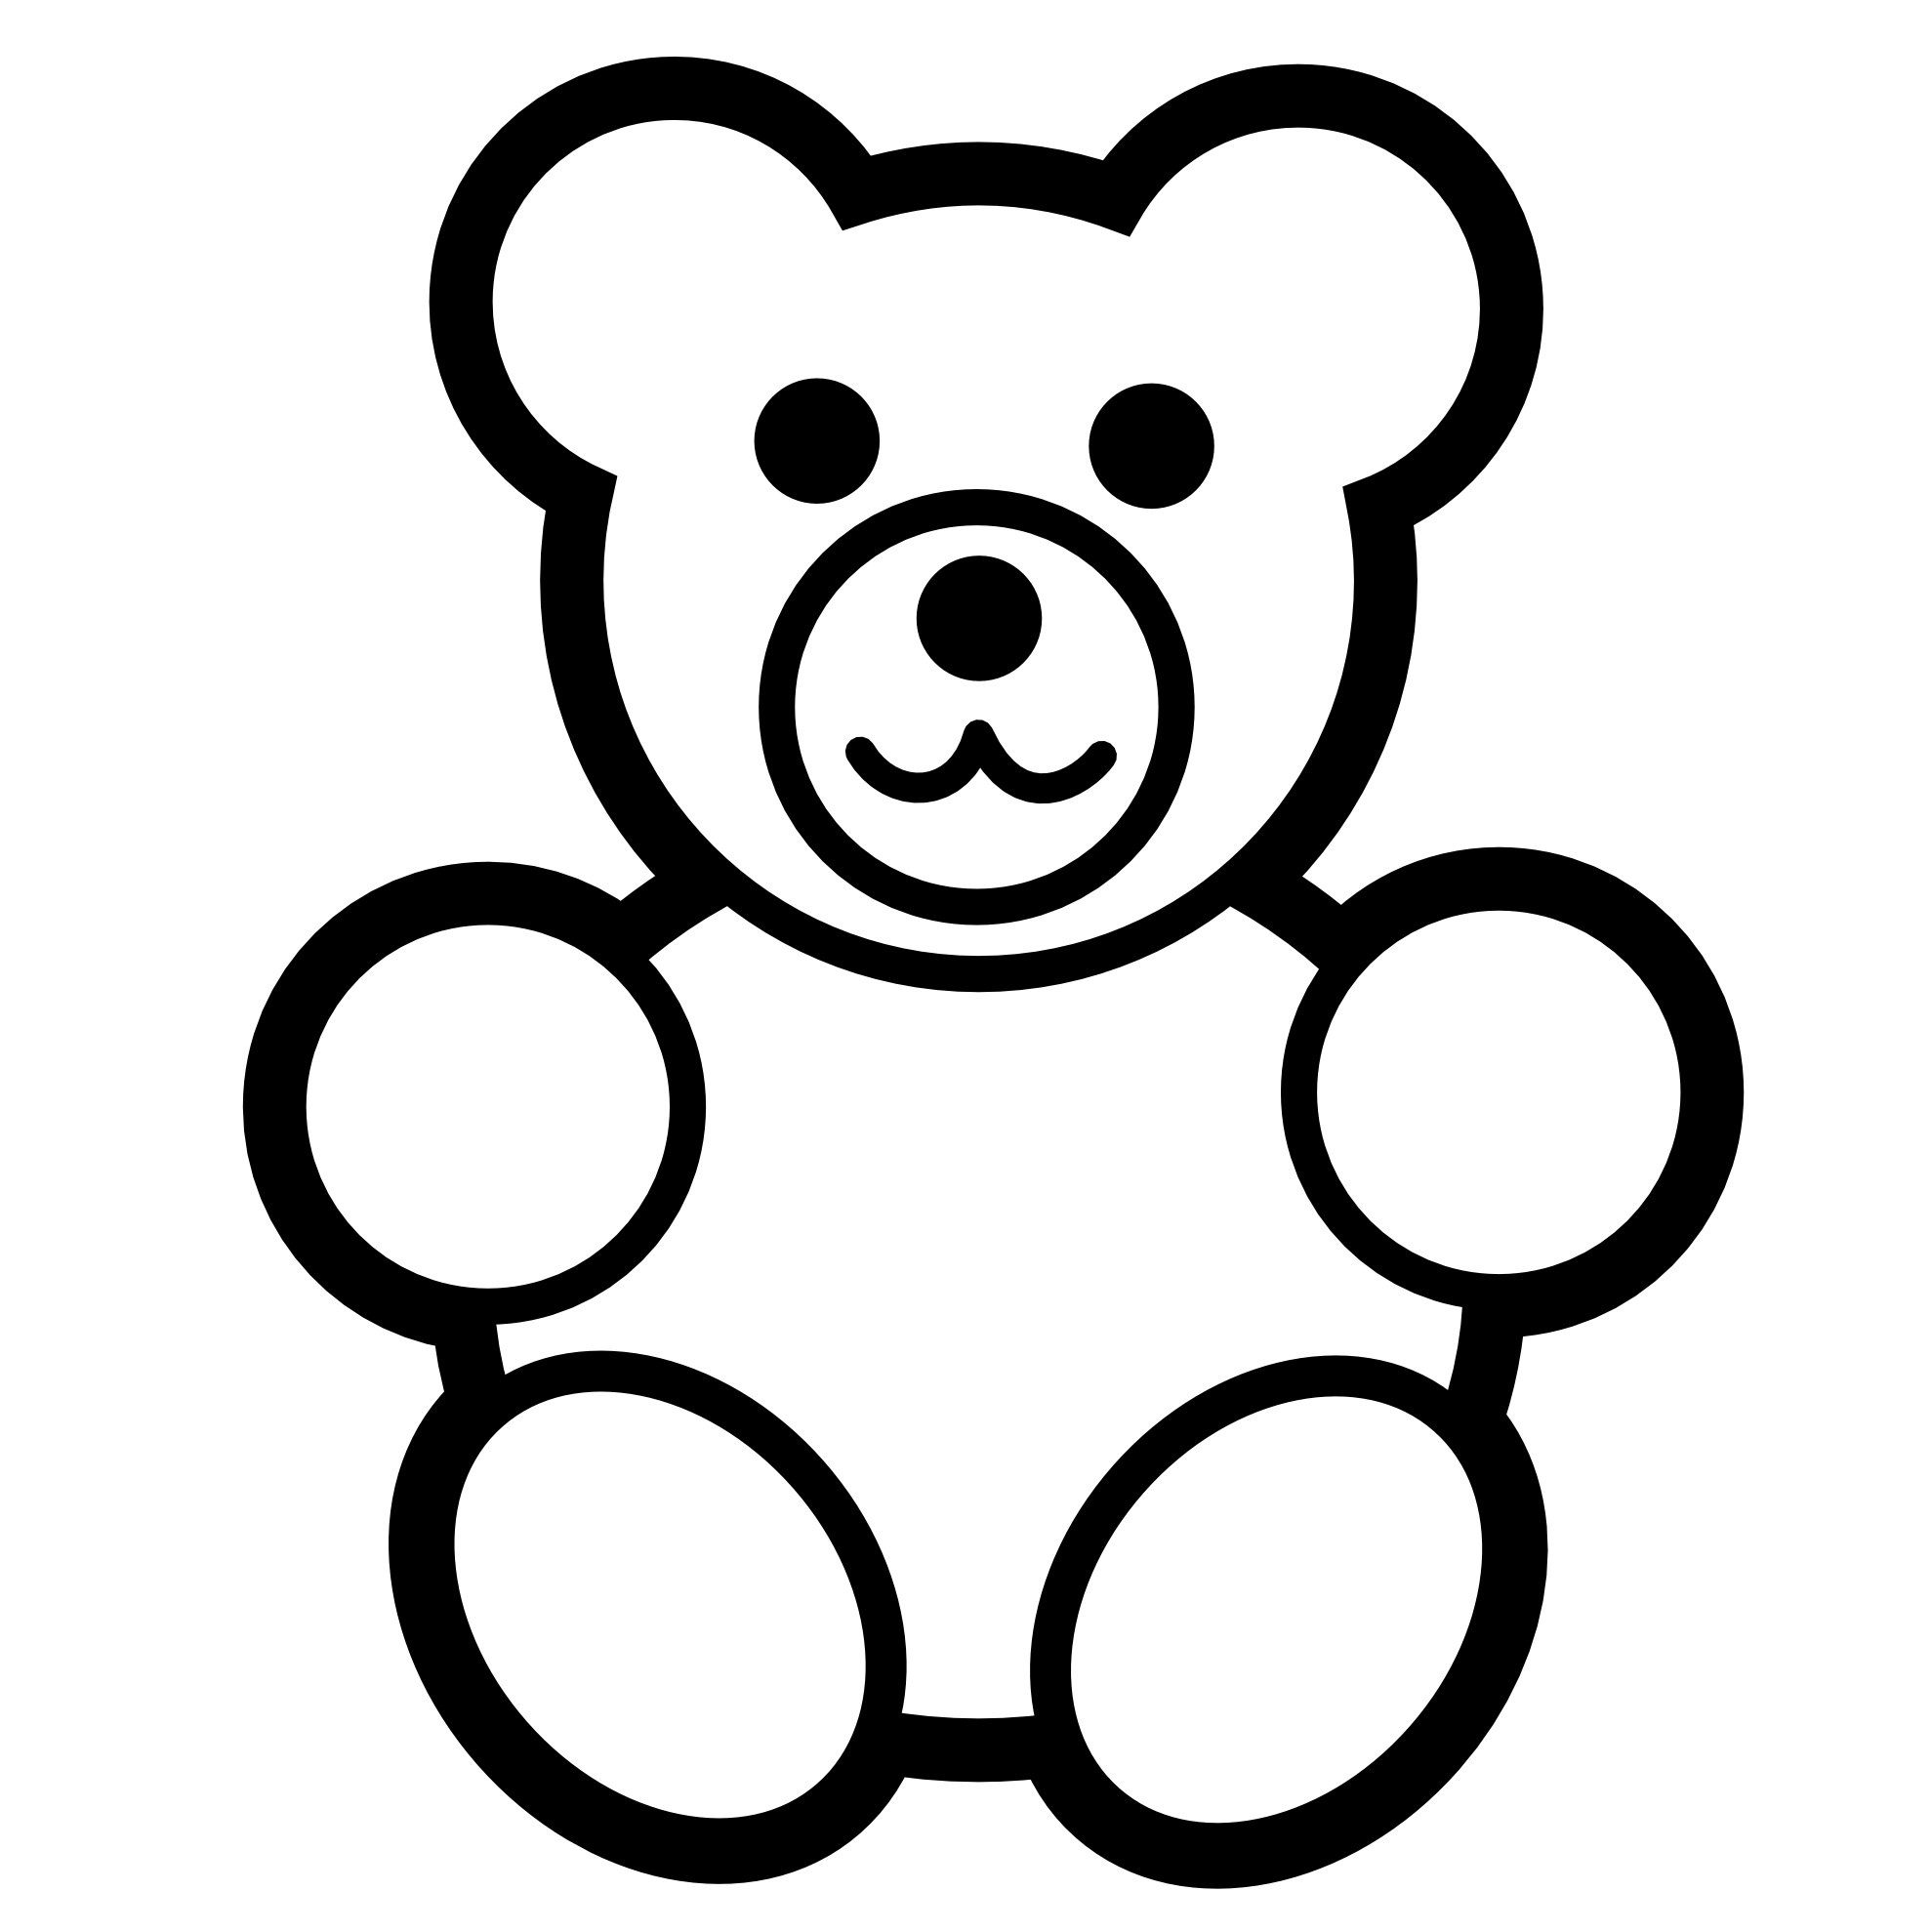 coloring pages of bears to print bear 2 bears adult coloring pages coloring bears to of print pages